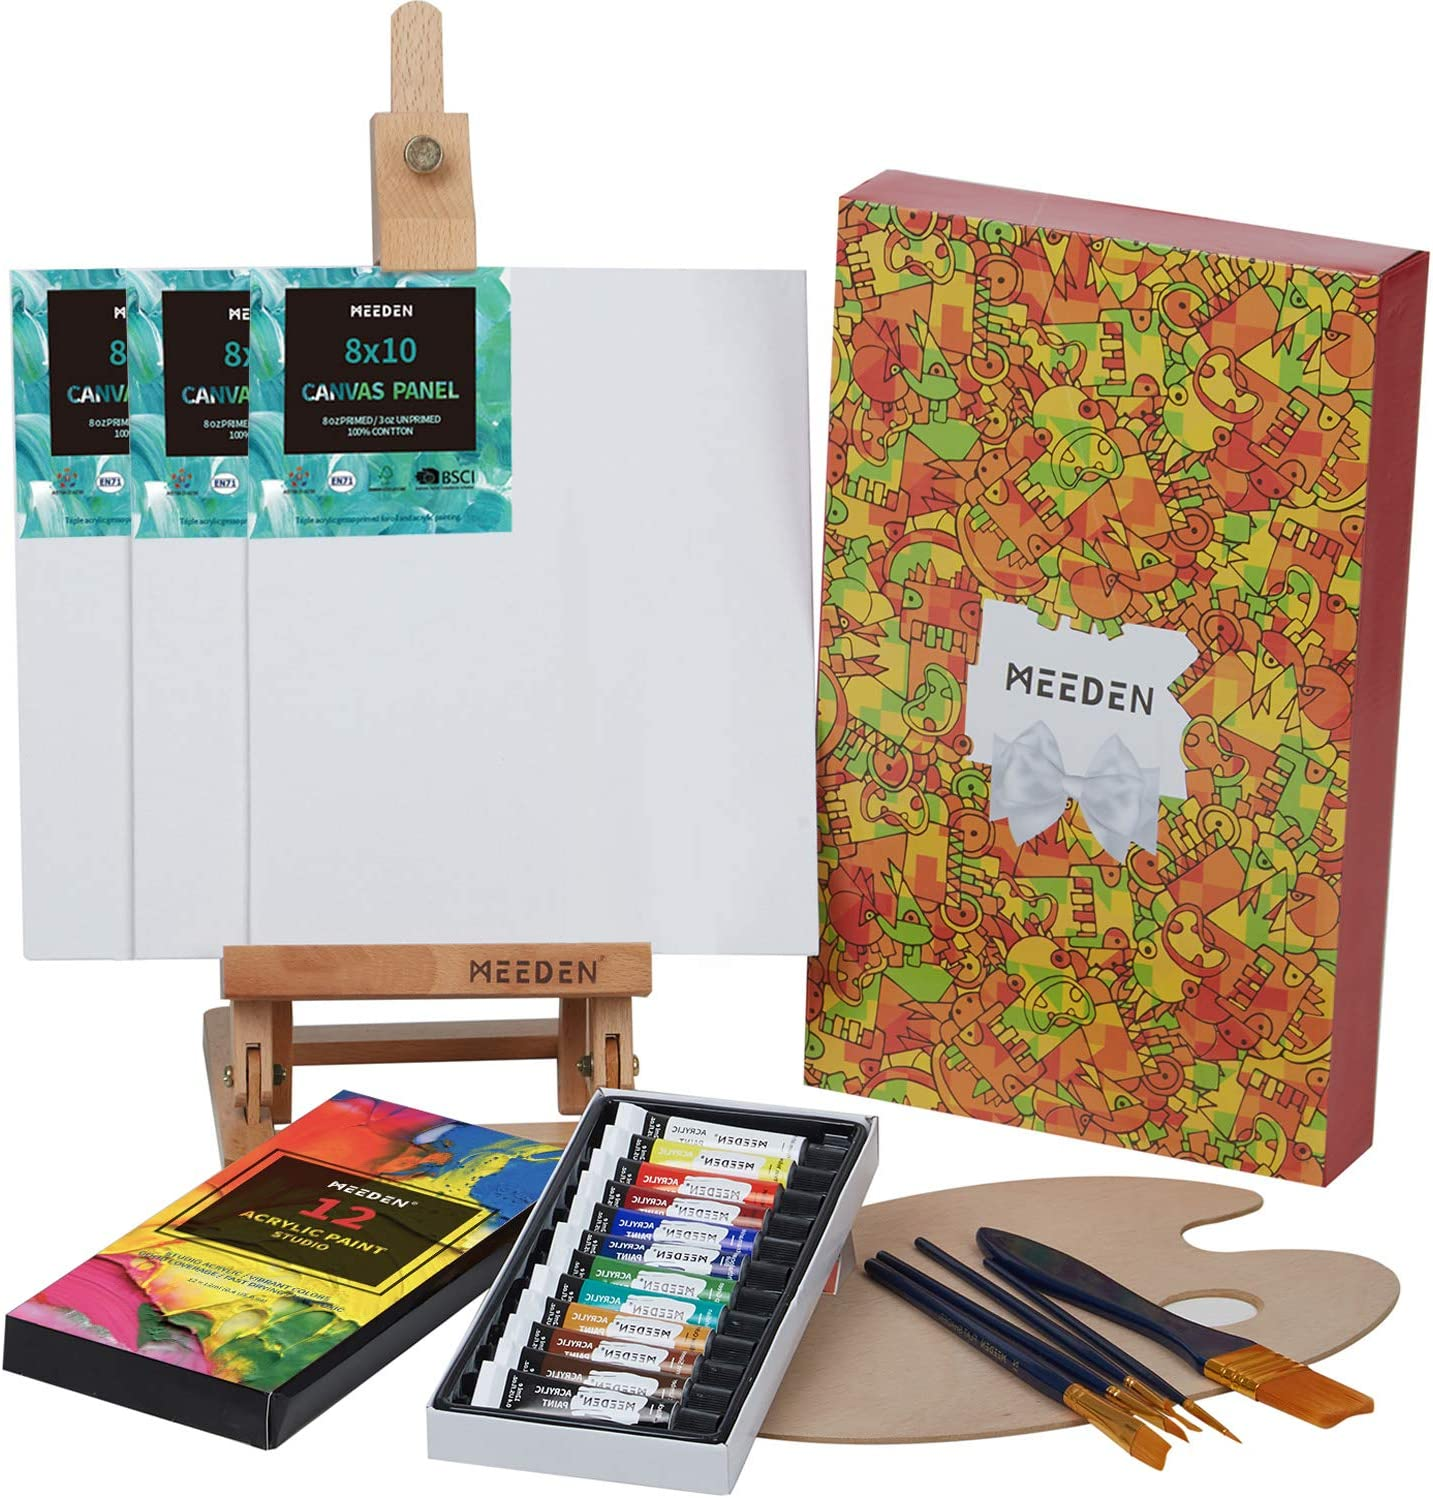 MEEDEN 22-Pcs Acrylic Painting Set with 16.8'' Tabletop Easel, 12 Colors Acrylic Paints, 3 Canvas Panels, 5 Paint Brushes & Wooden Palette, Art Painting Supplies for Kids, Beginners or Budding Artists